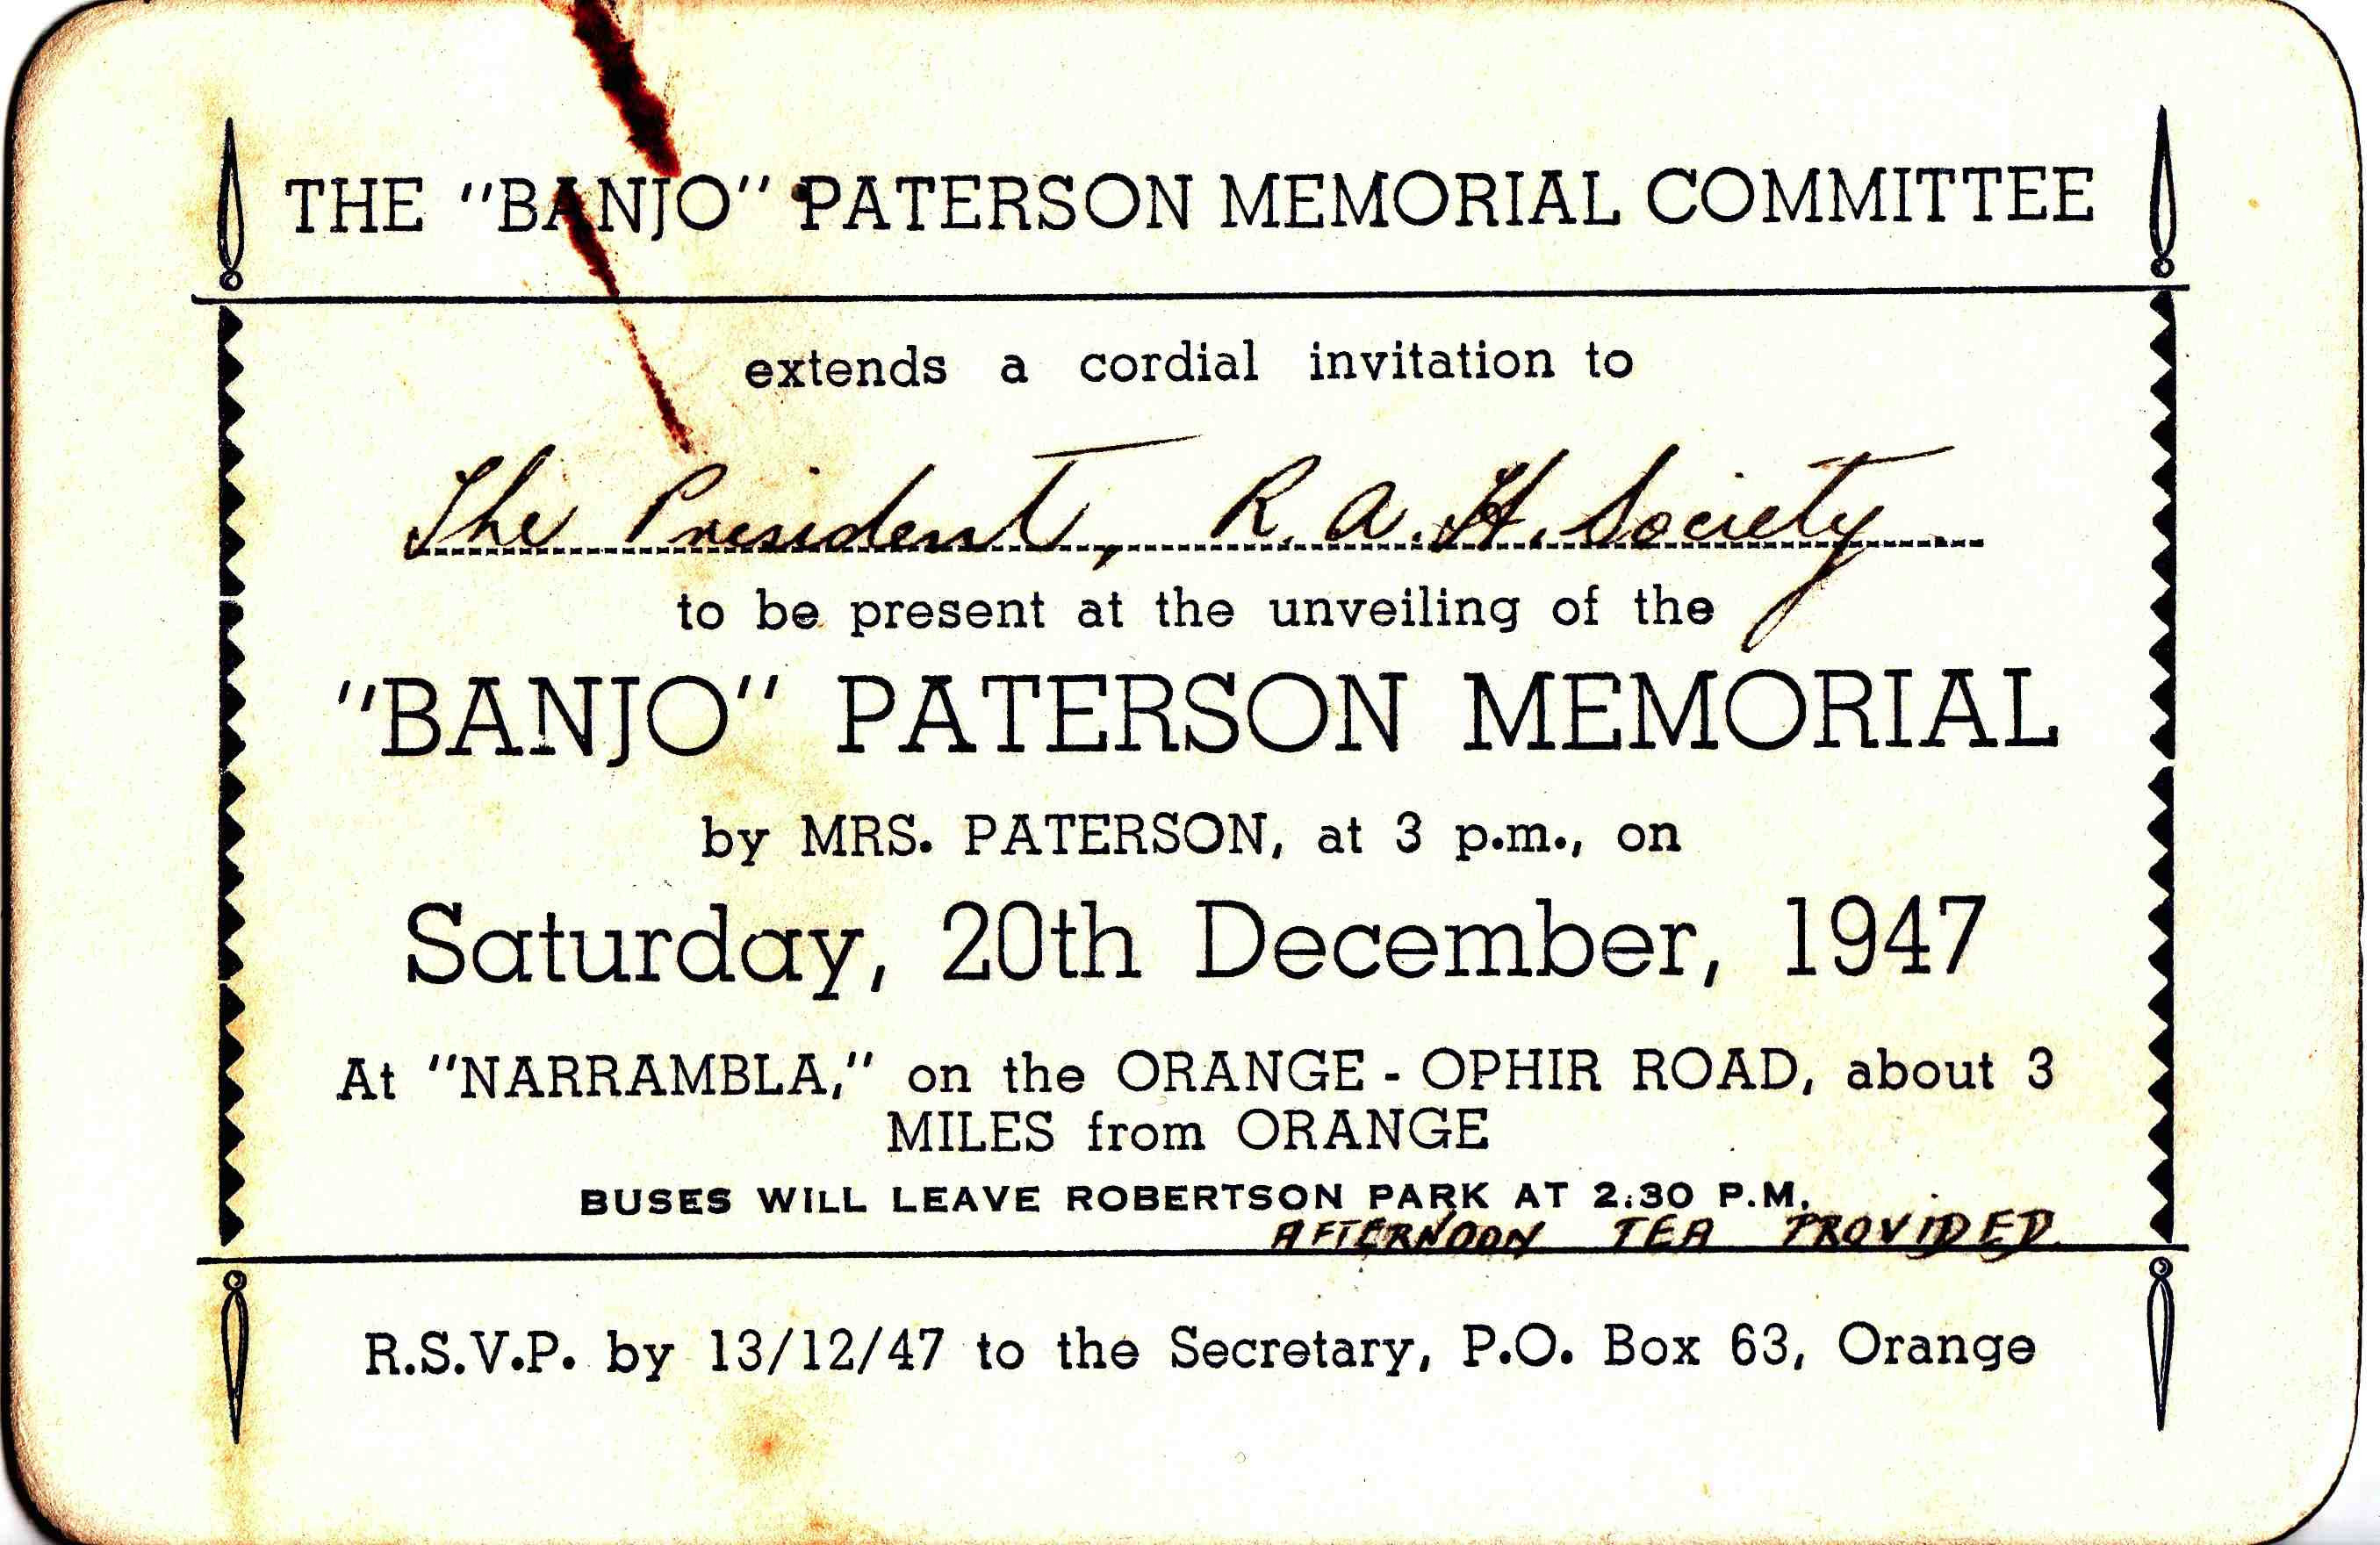 Banjo Paterson memorial invite 1947